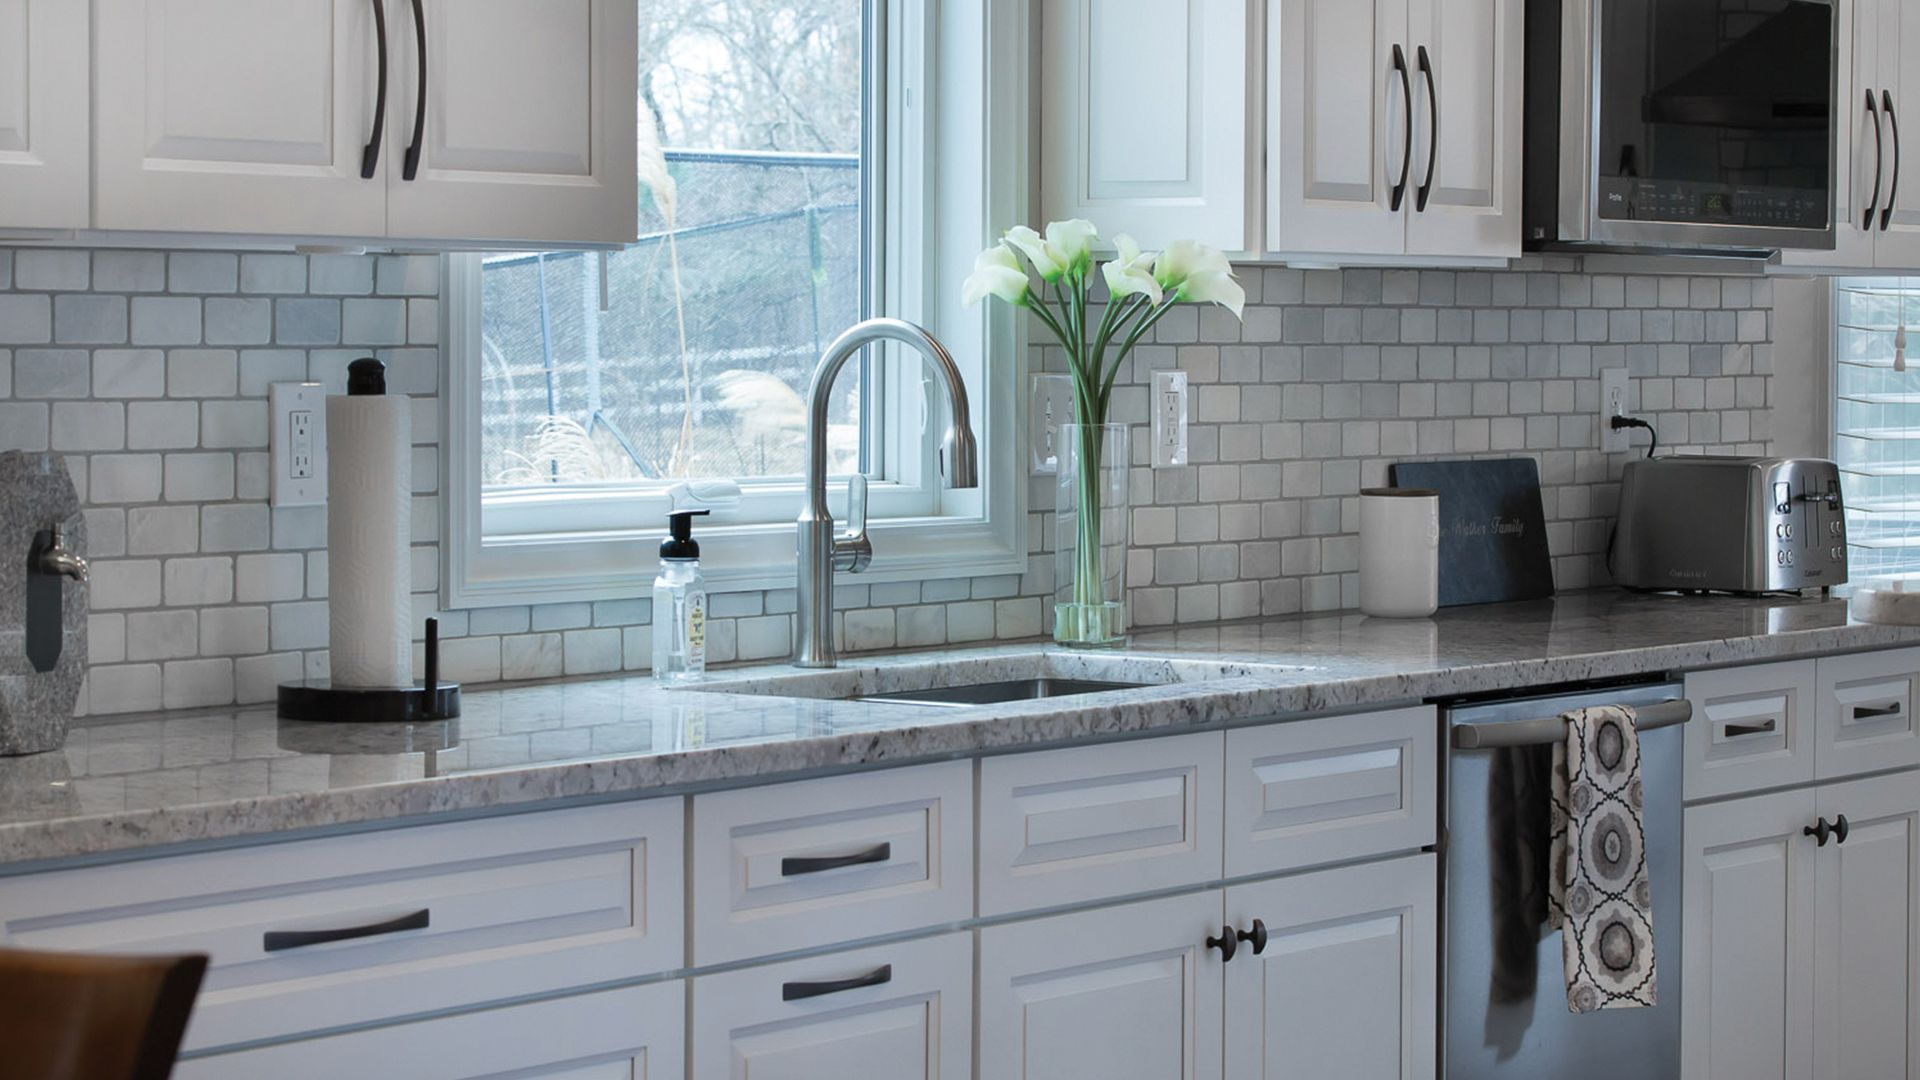 Inspiration Gallery Forevermark Cabinetry Affordable Kitchen Cabinets Kitchen Cabinet Kings Kitchen Inspirations